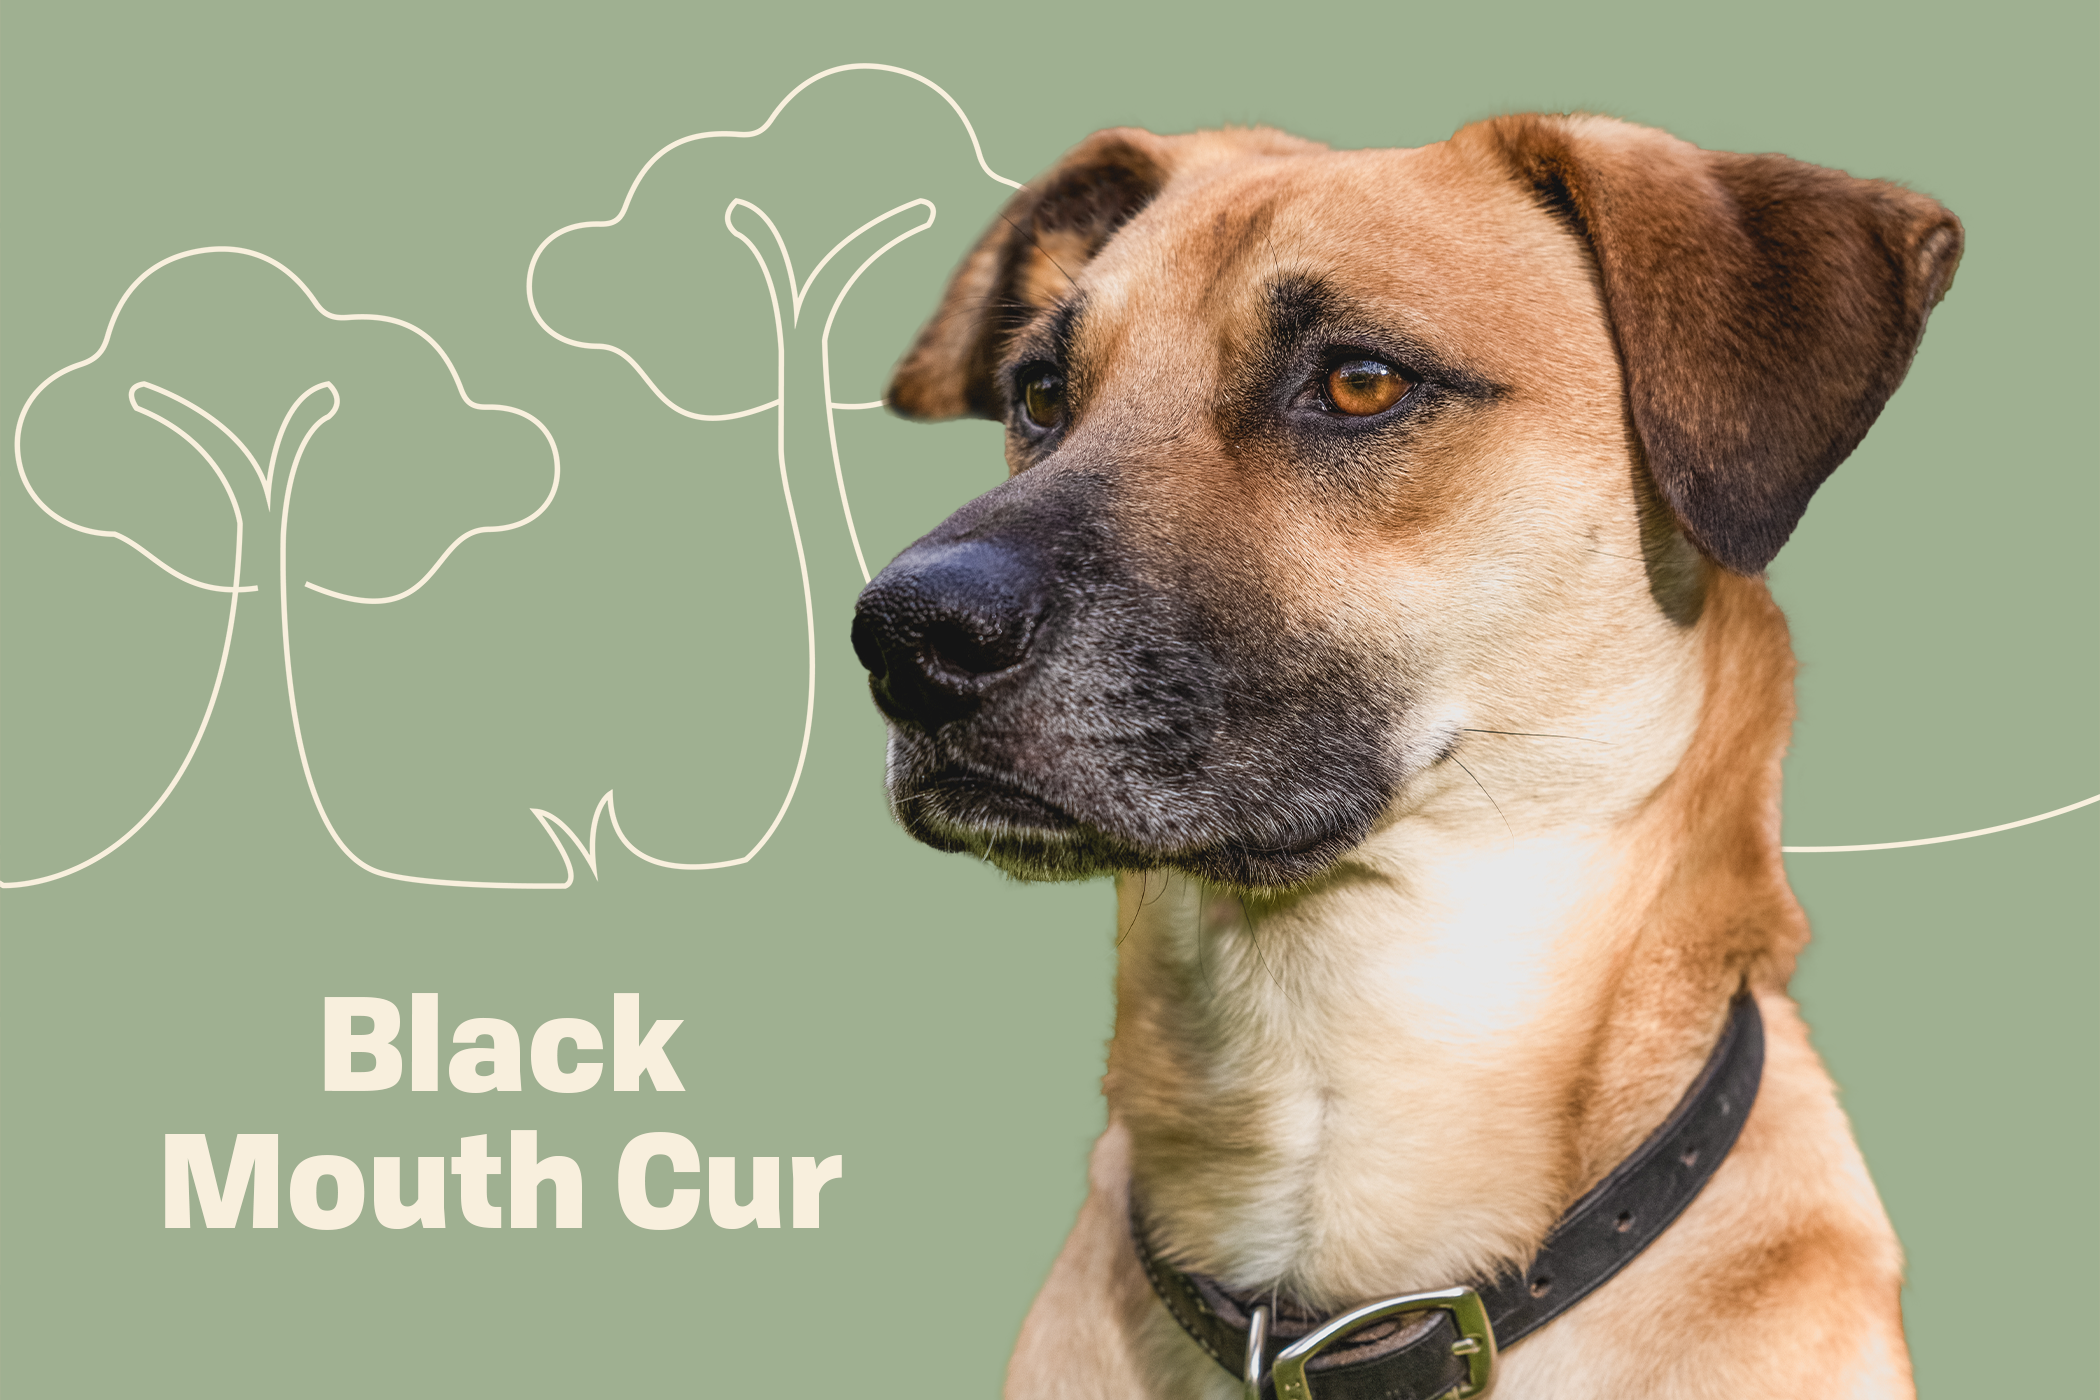 Black Mouth Cur dog breed profile treatment dog on a green background